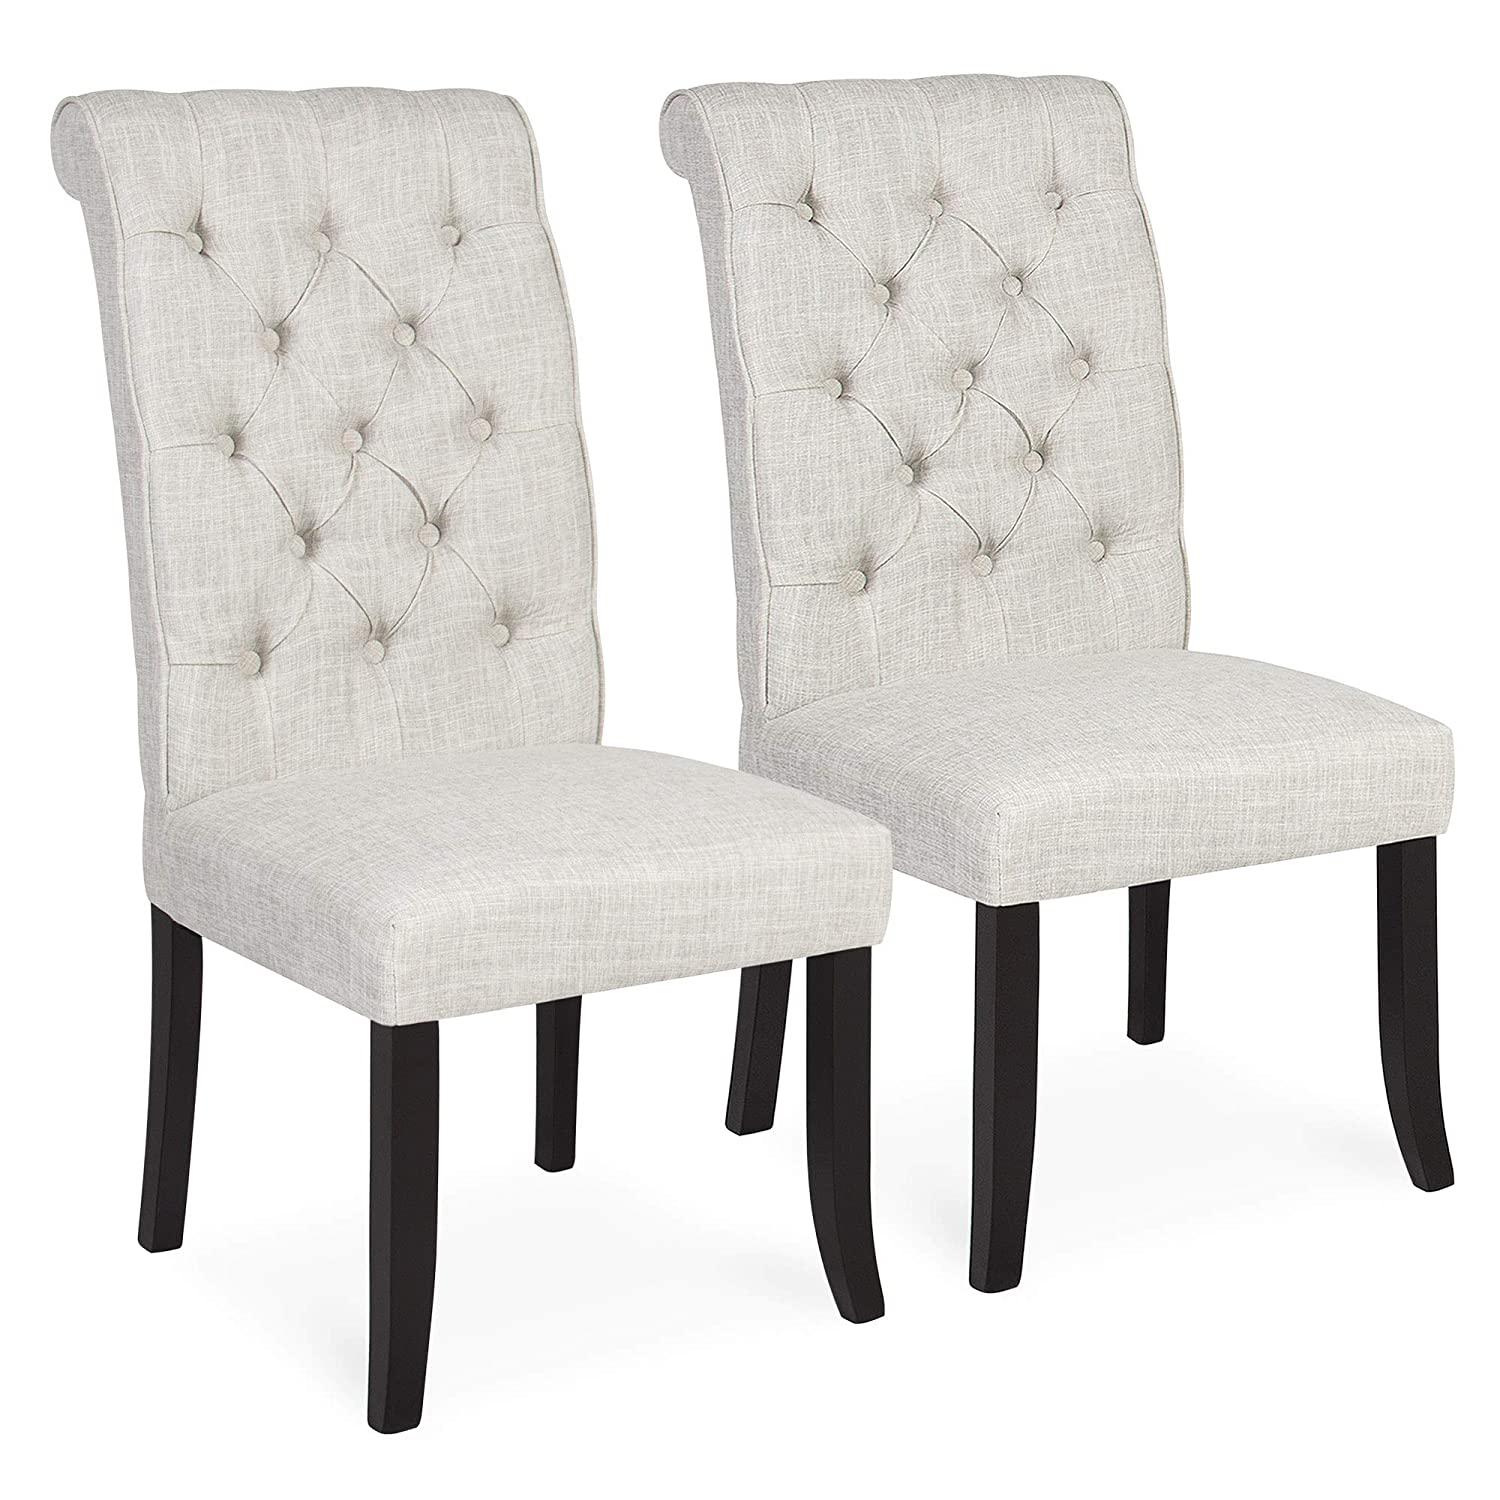 Best Choice Products Furniture Set Of 2 Tufted Parsons Dining Chair Set Modern Wood Linen Side Chair